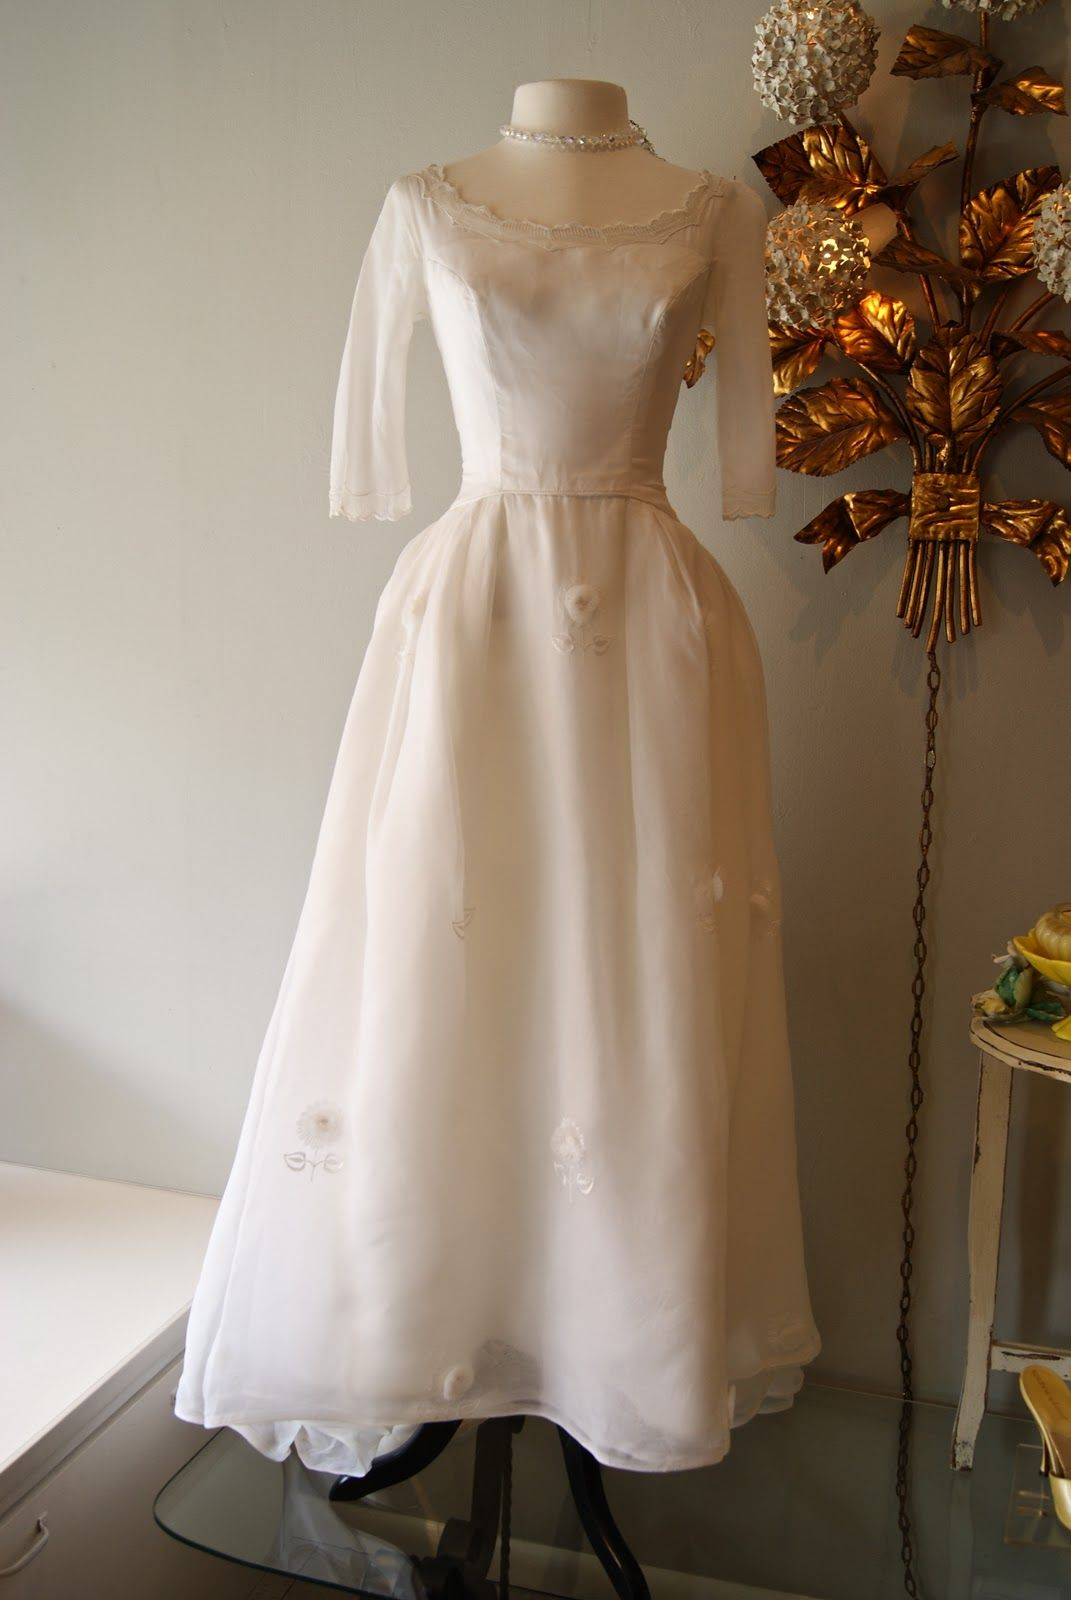 The Cahill Bride Vintage Clothing Boutique Wedding Gowns Vintage Wedding Gowns Lace